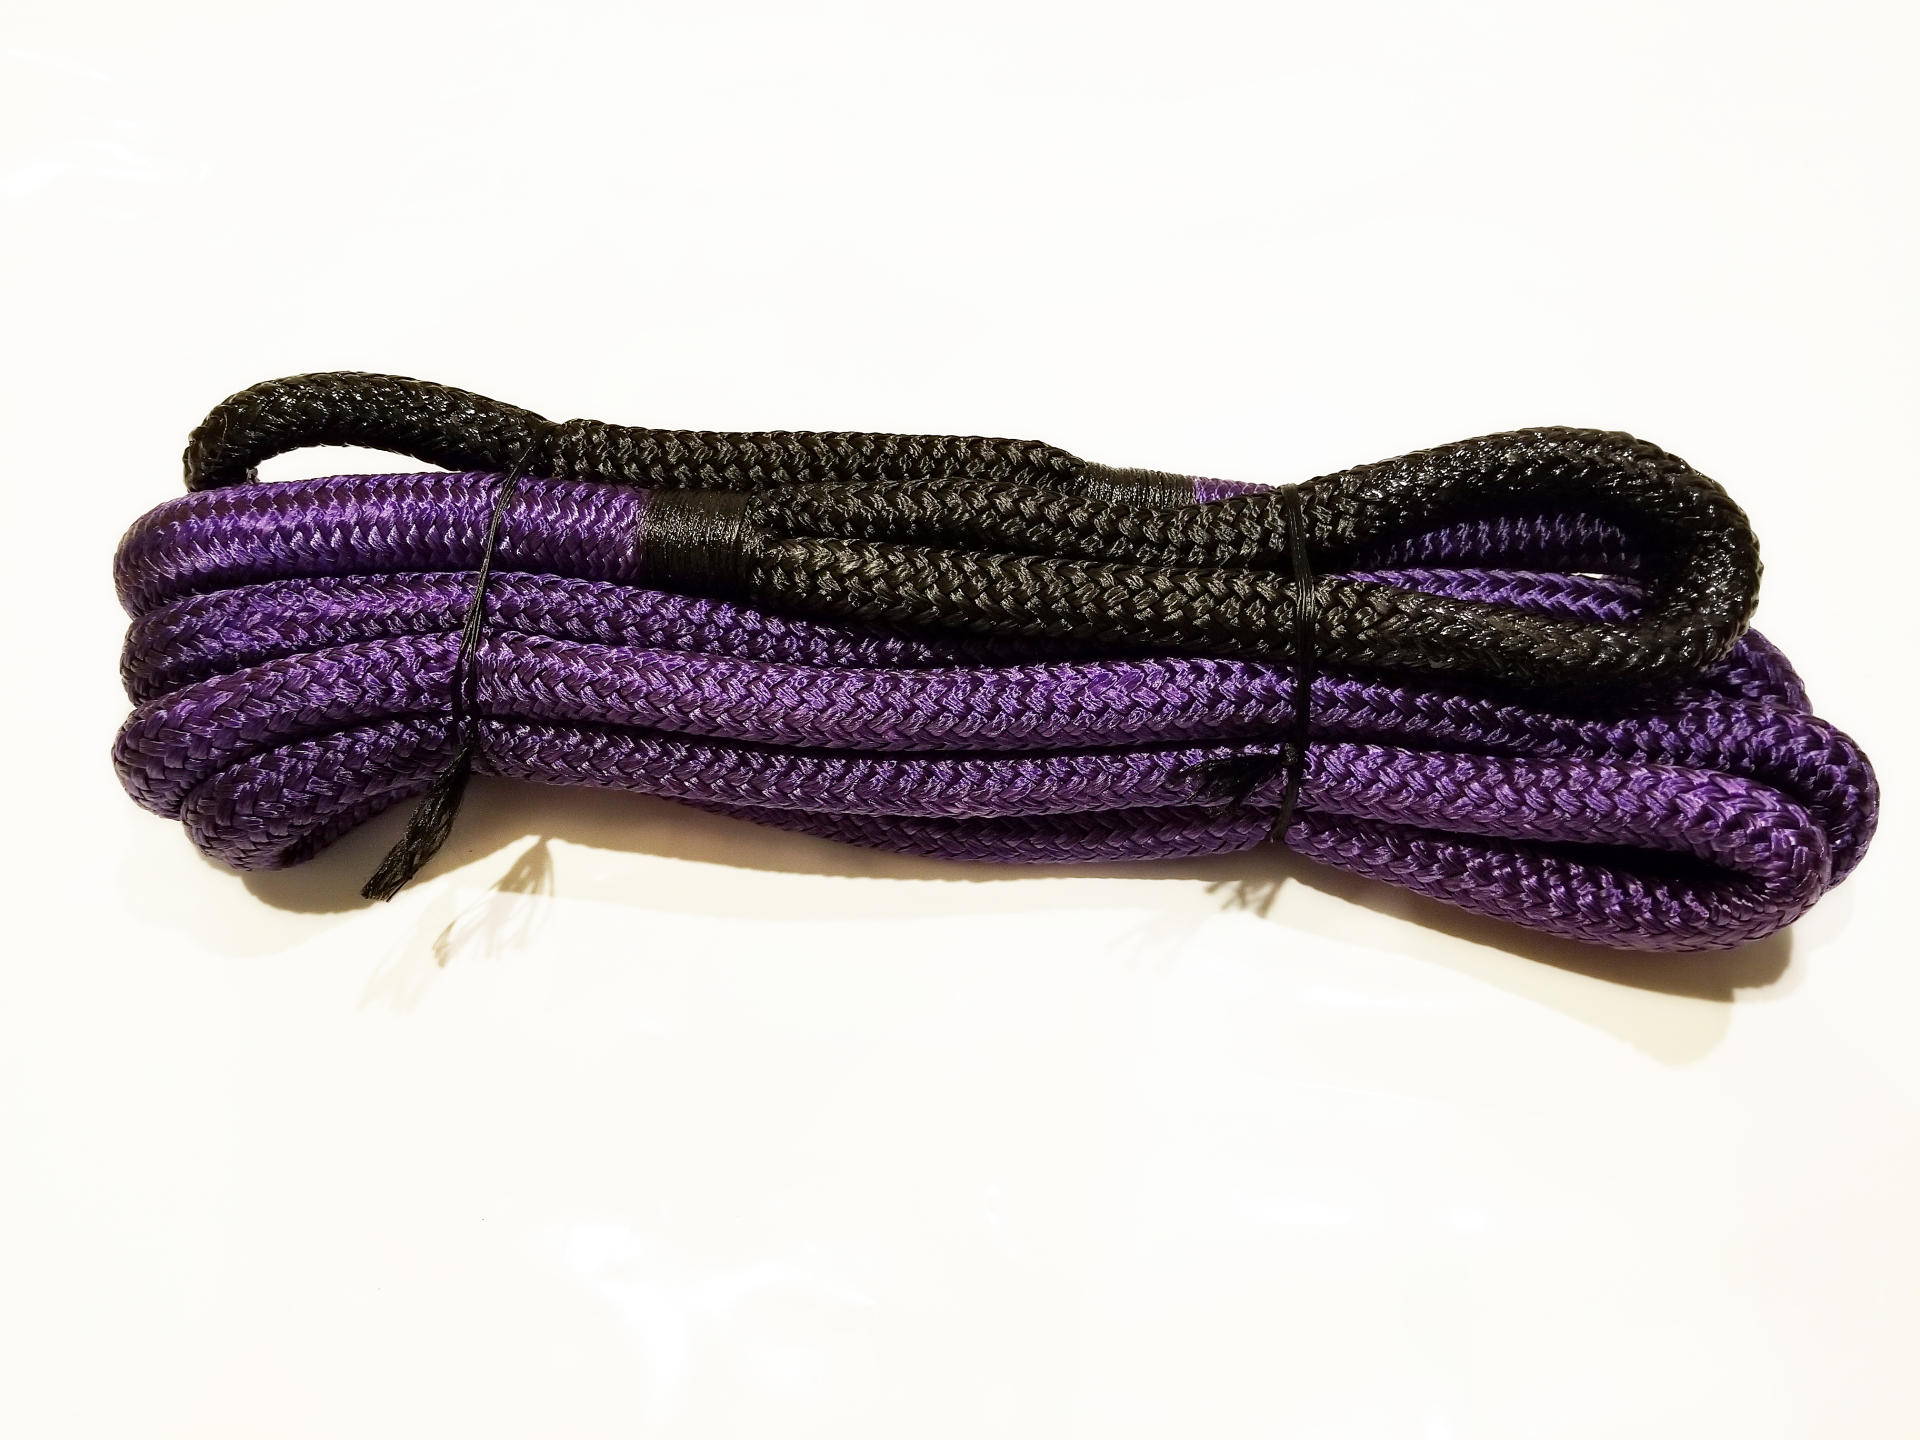 3/4 X 20 Kinetic Rope Purple with Black